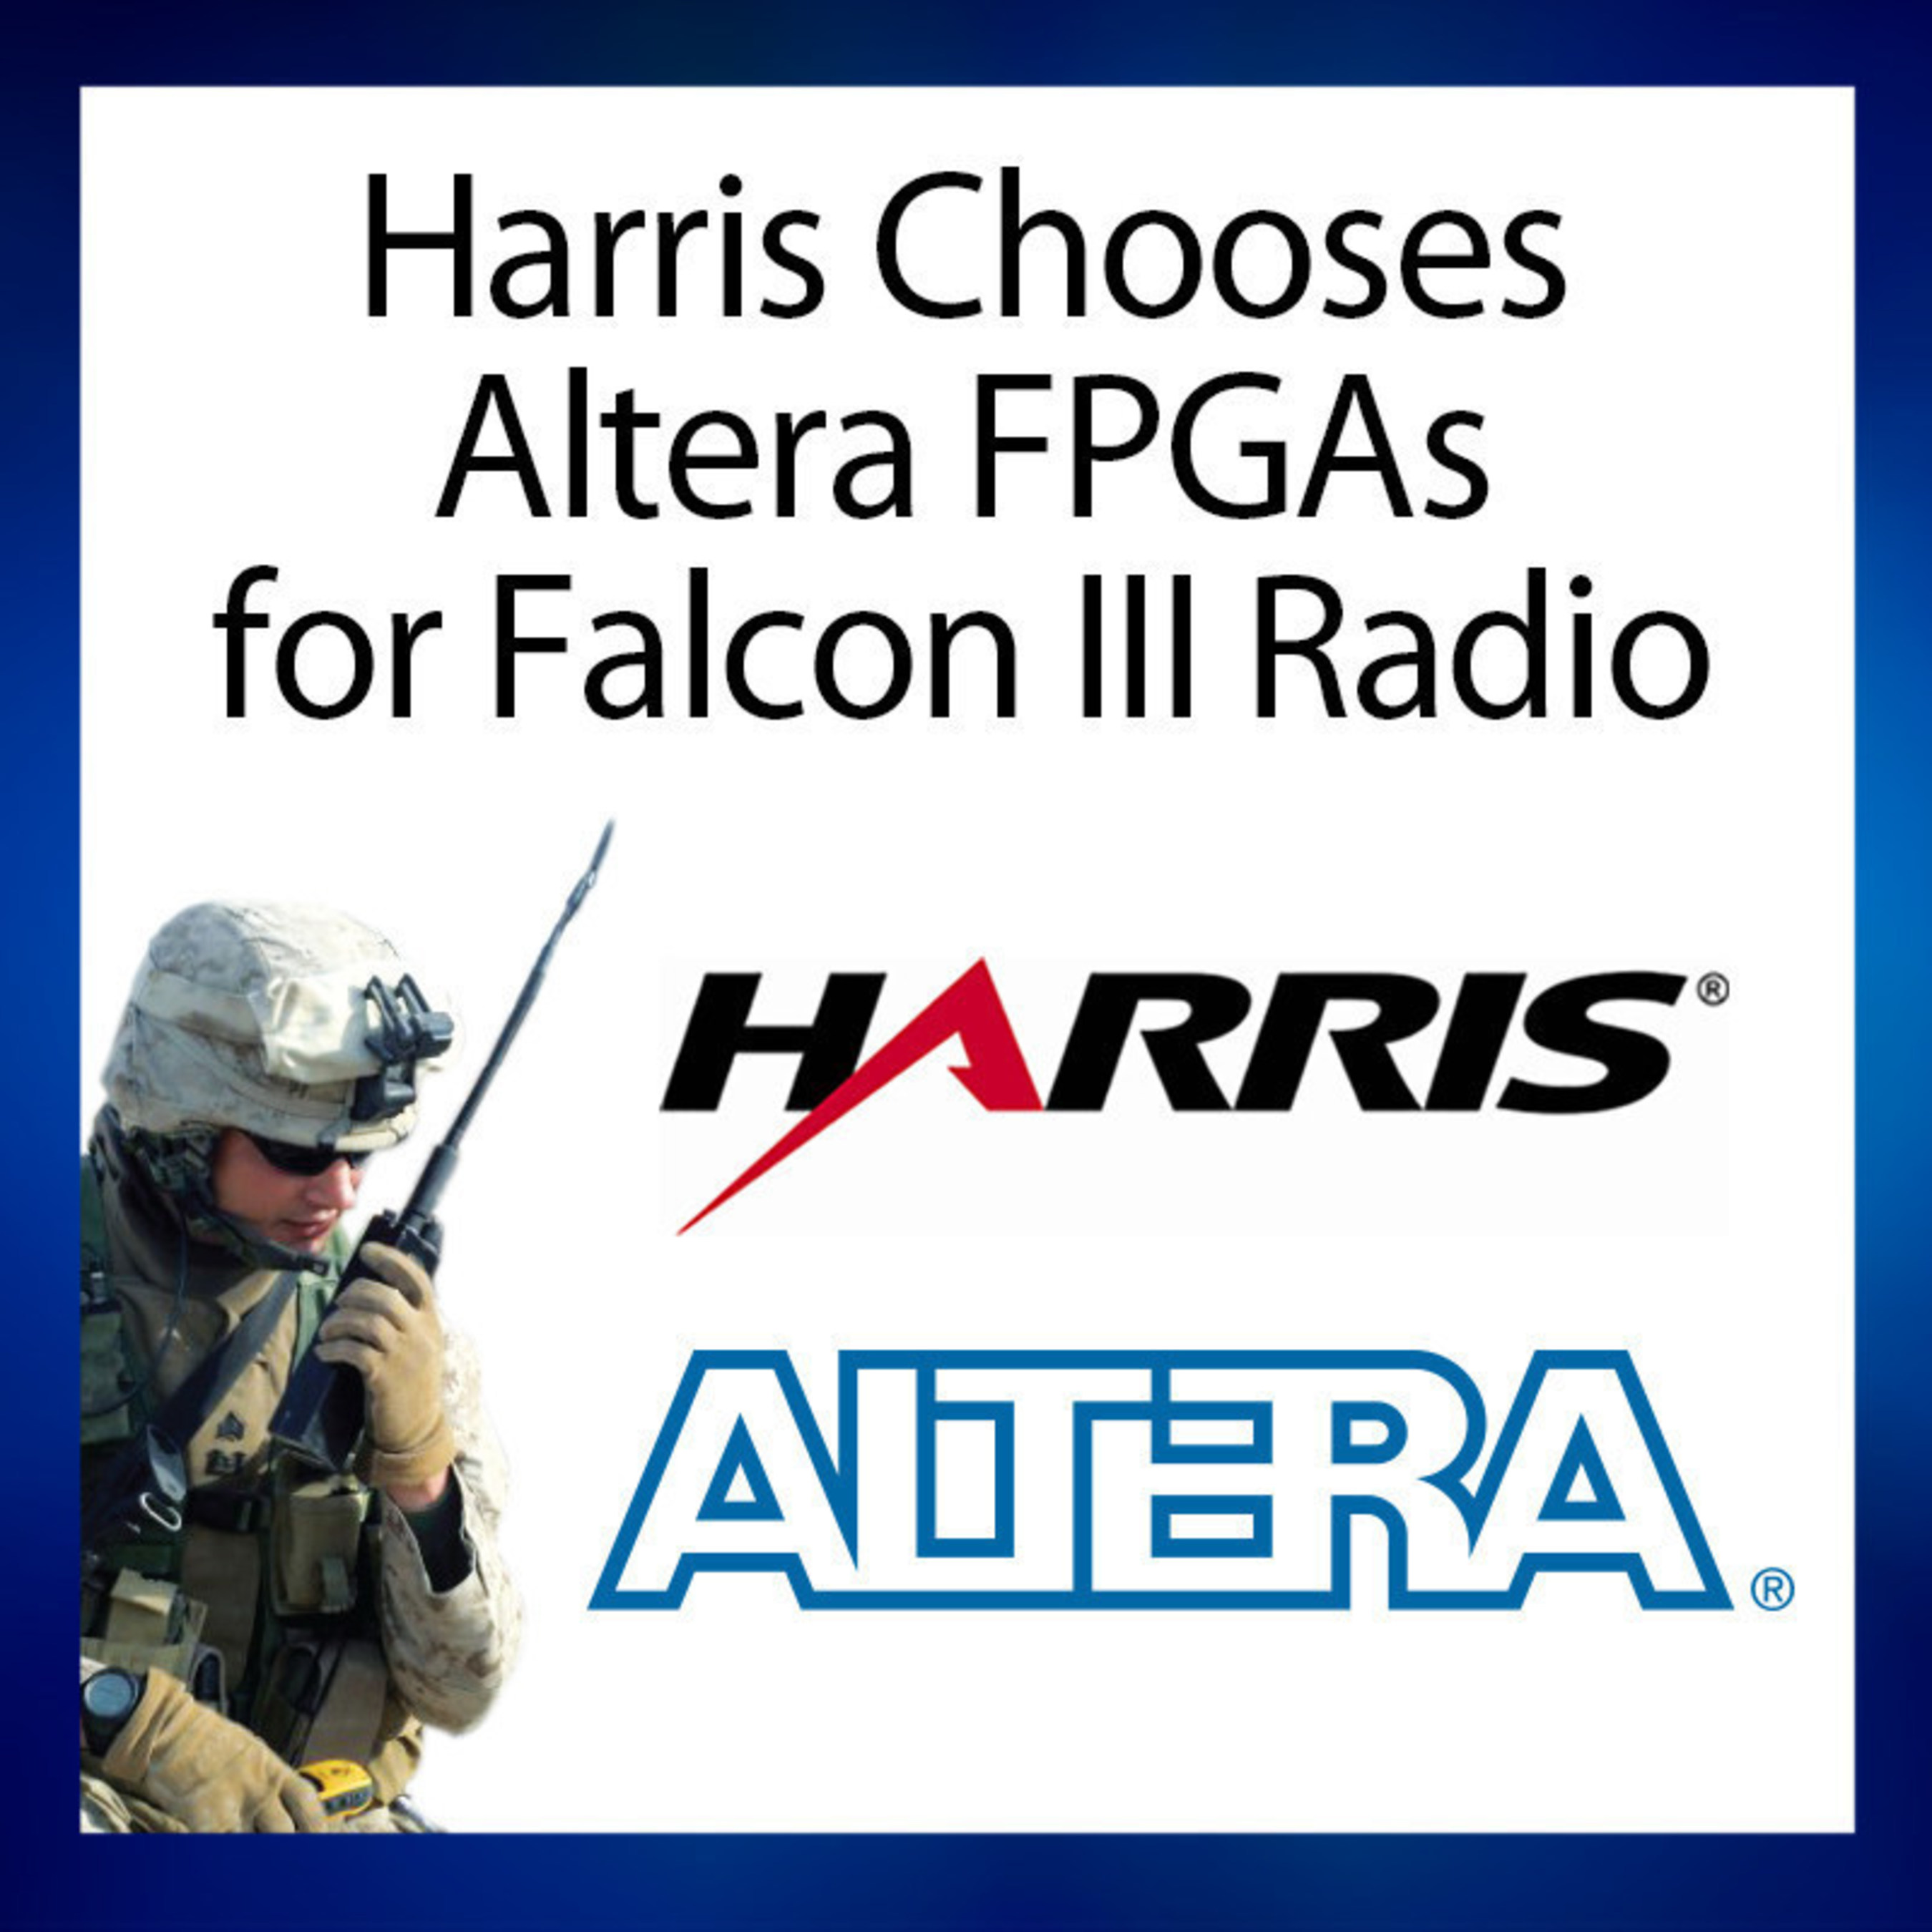 Harris chose Altera Cyclone V FPGAs to implement the Harris Falcon III Wideband Tactical Radio's modem and cryptography functionality. Altera's Cyclone V FPGAs offer low power, small packaging and quick time-to-market, enabling Harris to deliver a smaller, lighter secure radio with a significantly longer battery life, ideal for demanding military field operations.